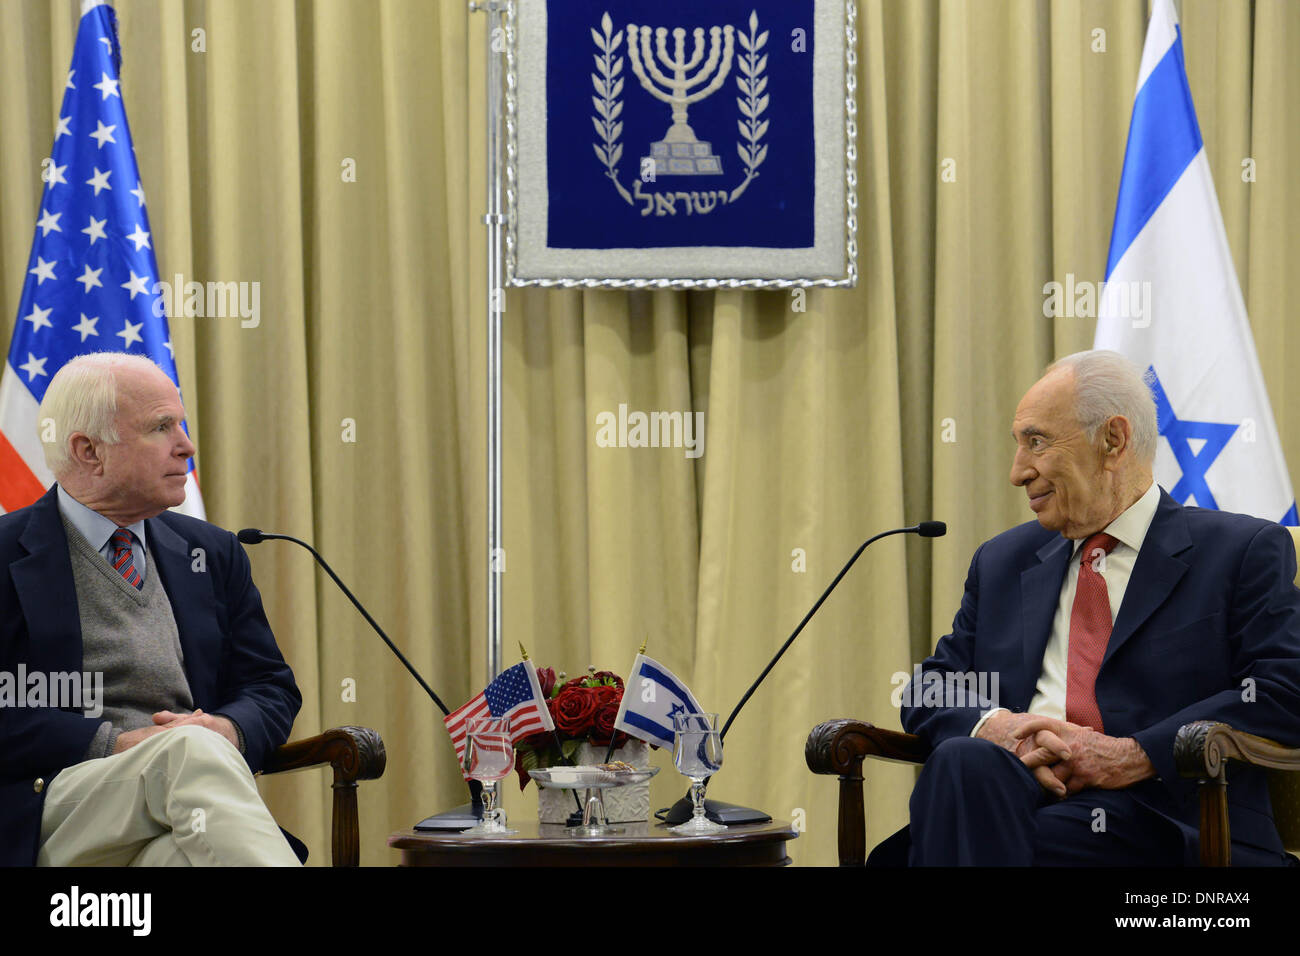 Jerusalem. 4th Jan, 2014. Israeli President Shimon Peres (R) meets with visiting U.S. Senator John McCain at the President's residence in Jerusalem, on Jan. 4, 2014. Credit:  GPO/Kobi Gideon/Xinhua/Alamy Live News - Stock Image